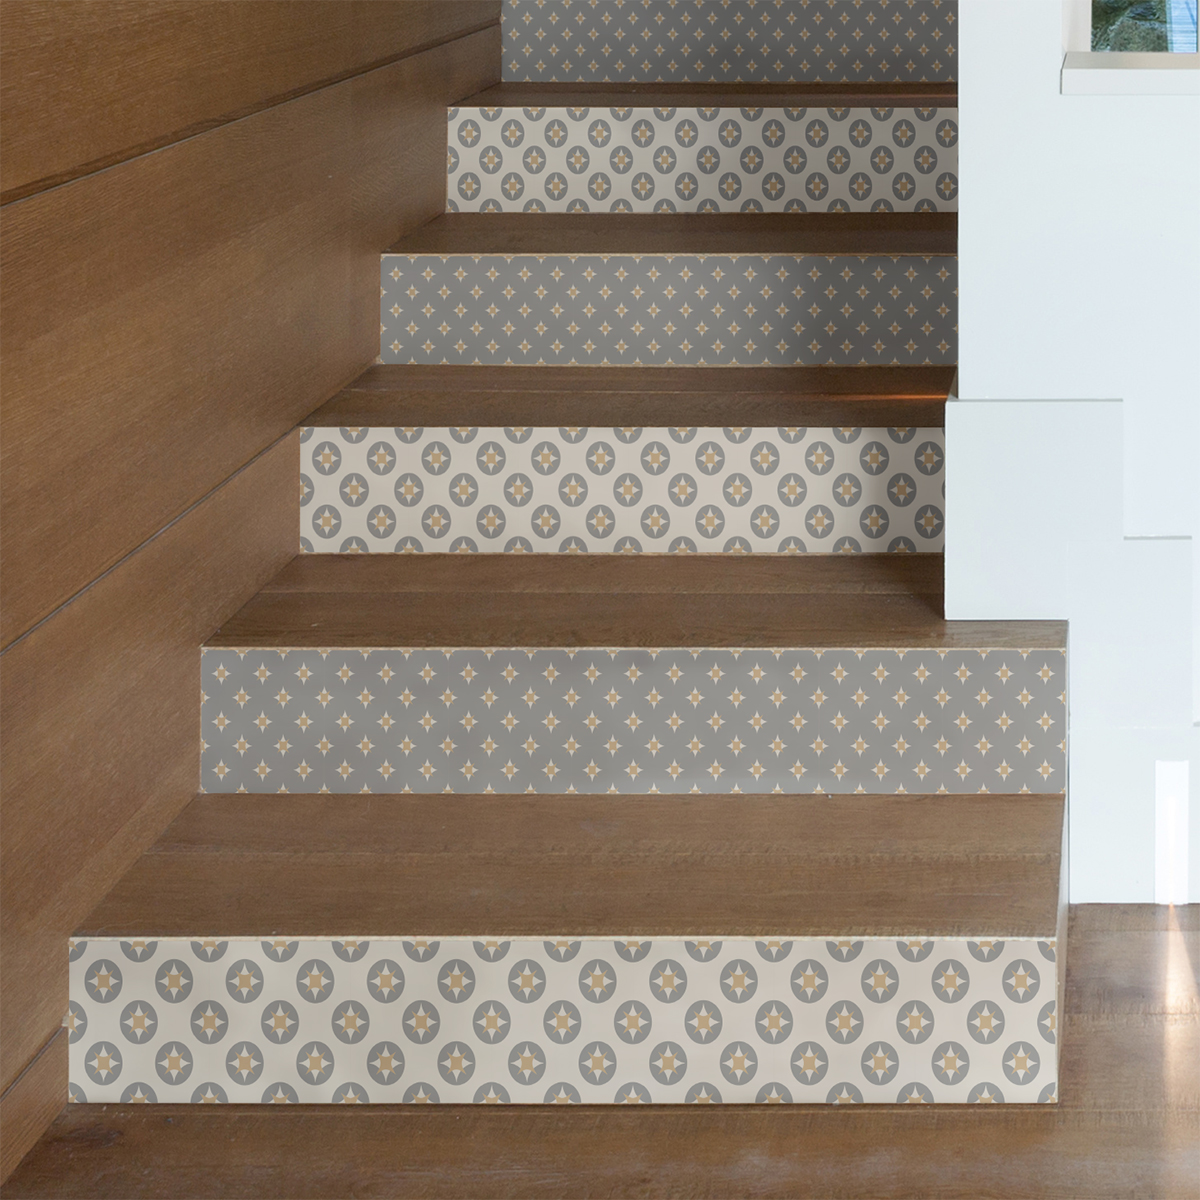 stickers escalier carreaux de ciment konrad x 2 ambiance sticker col stairs ros b095 stickers. Black Bedroom Furniture Sets. Home Design Ideas